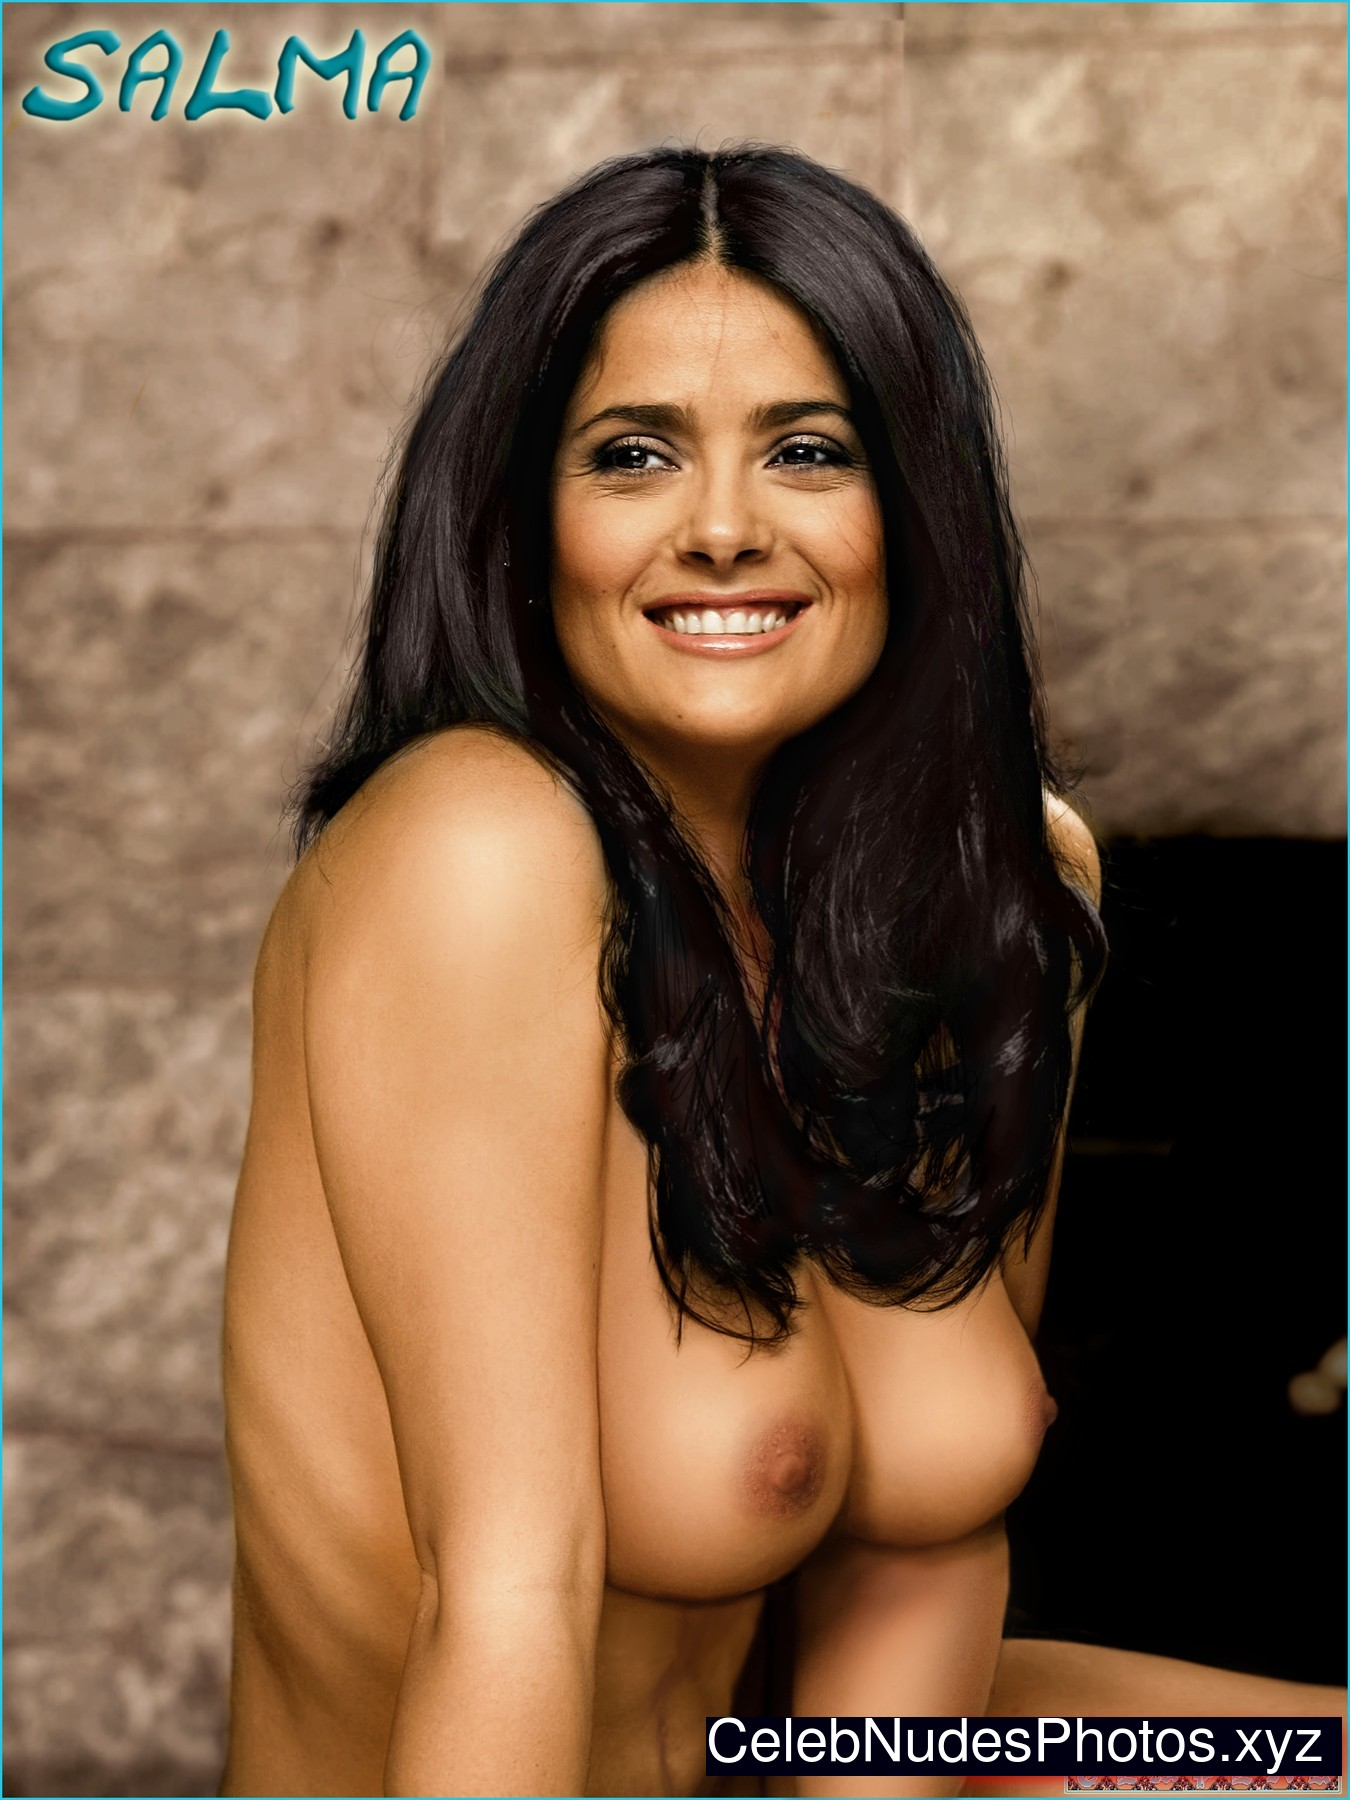 celebrities nude Salma hayek